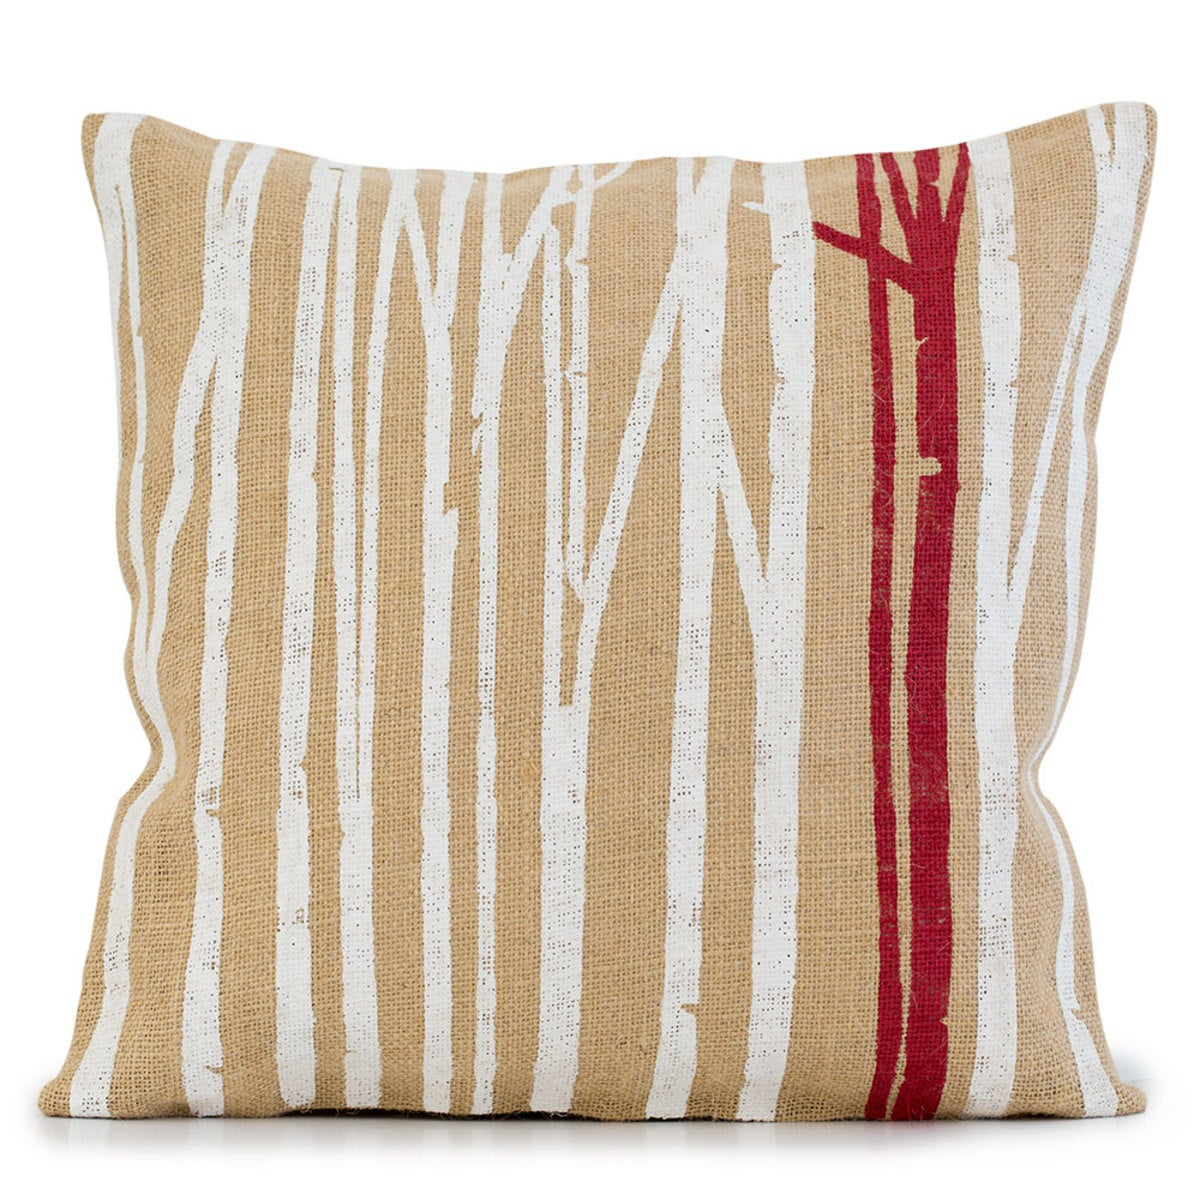 Burlap Branches Pillow Cover